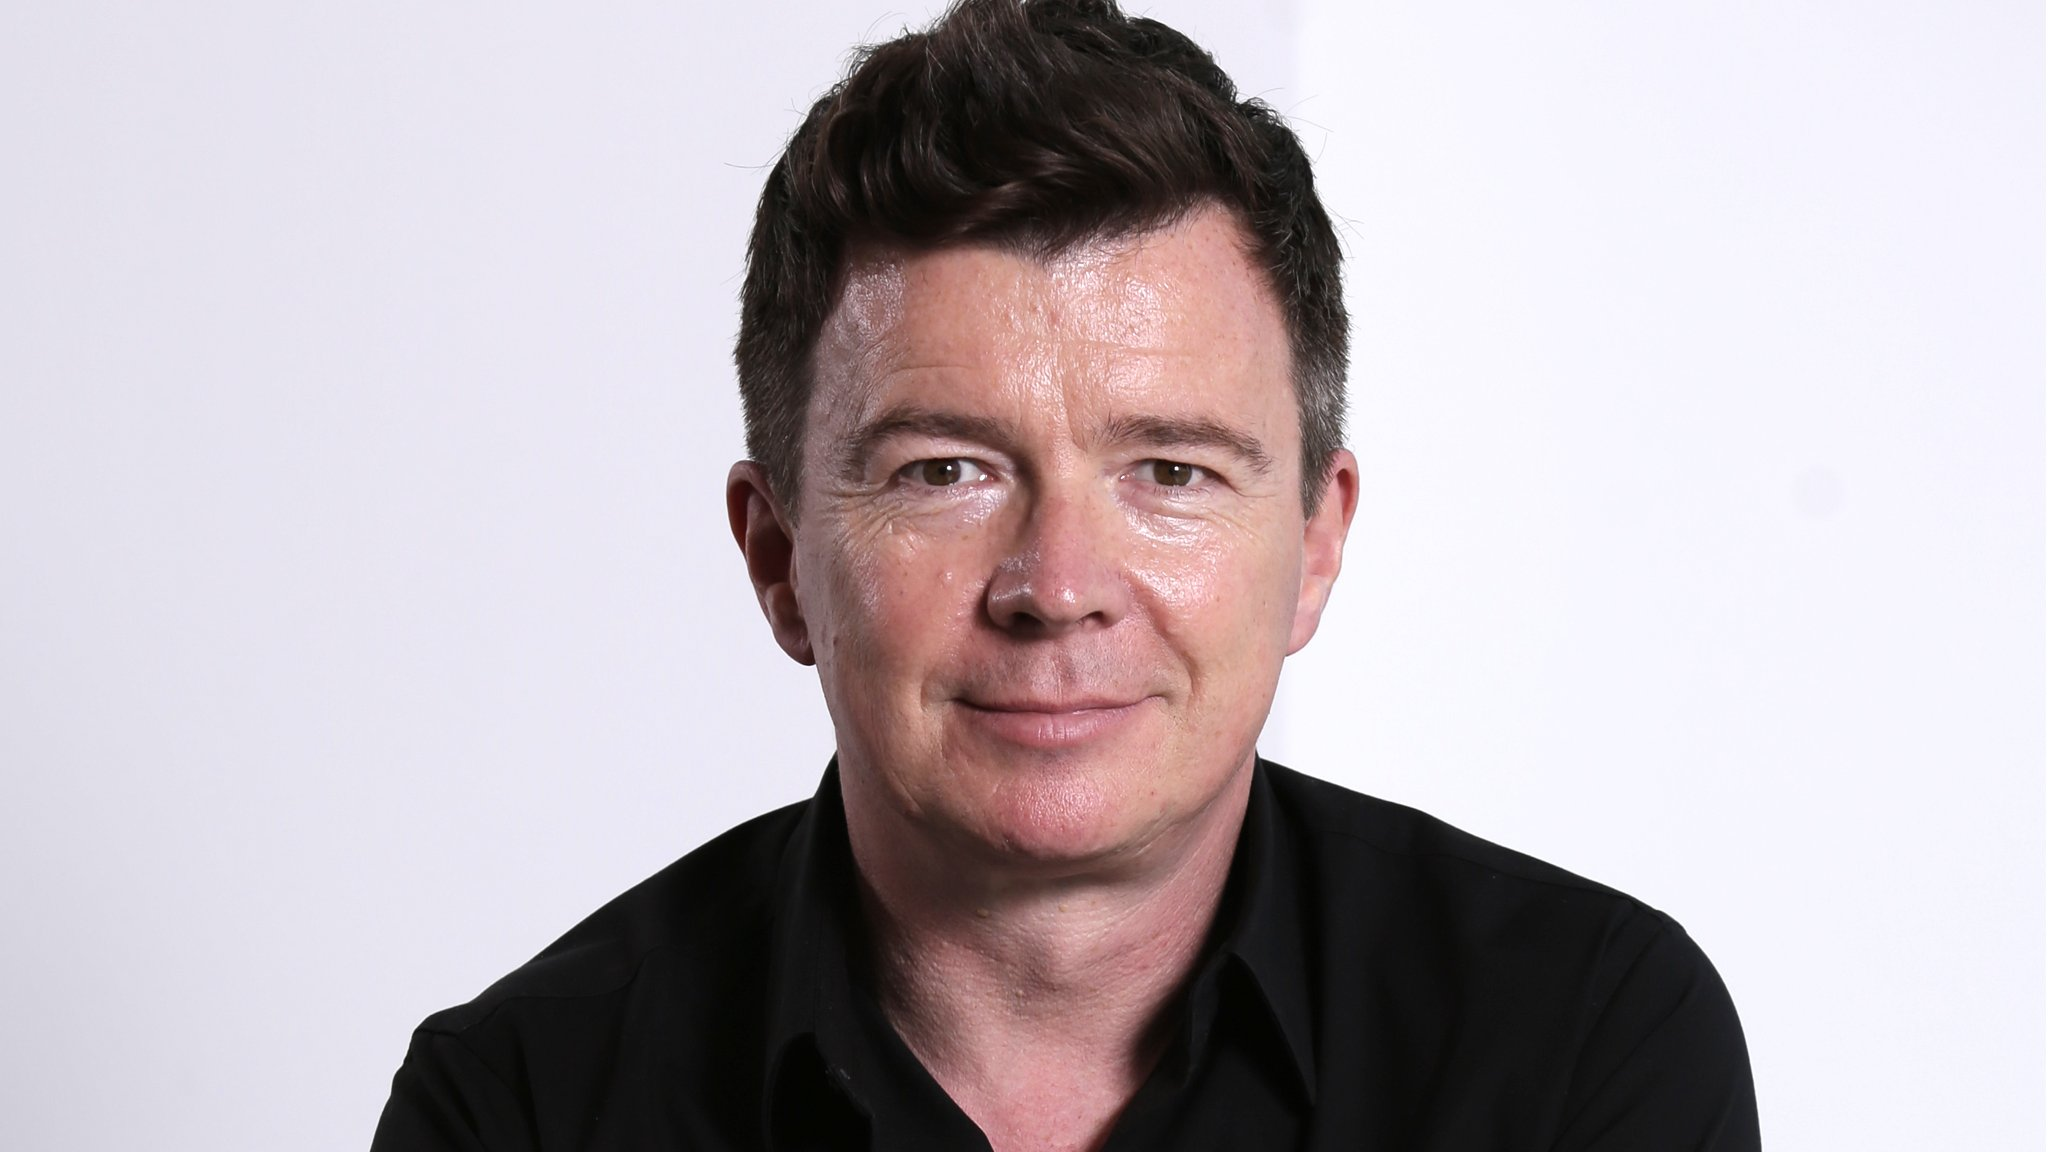 BBC News - Rick Astley on BBC Music album of the year list but David Bowie misses out